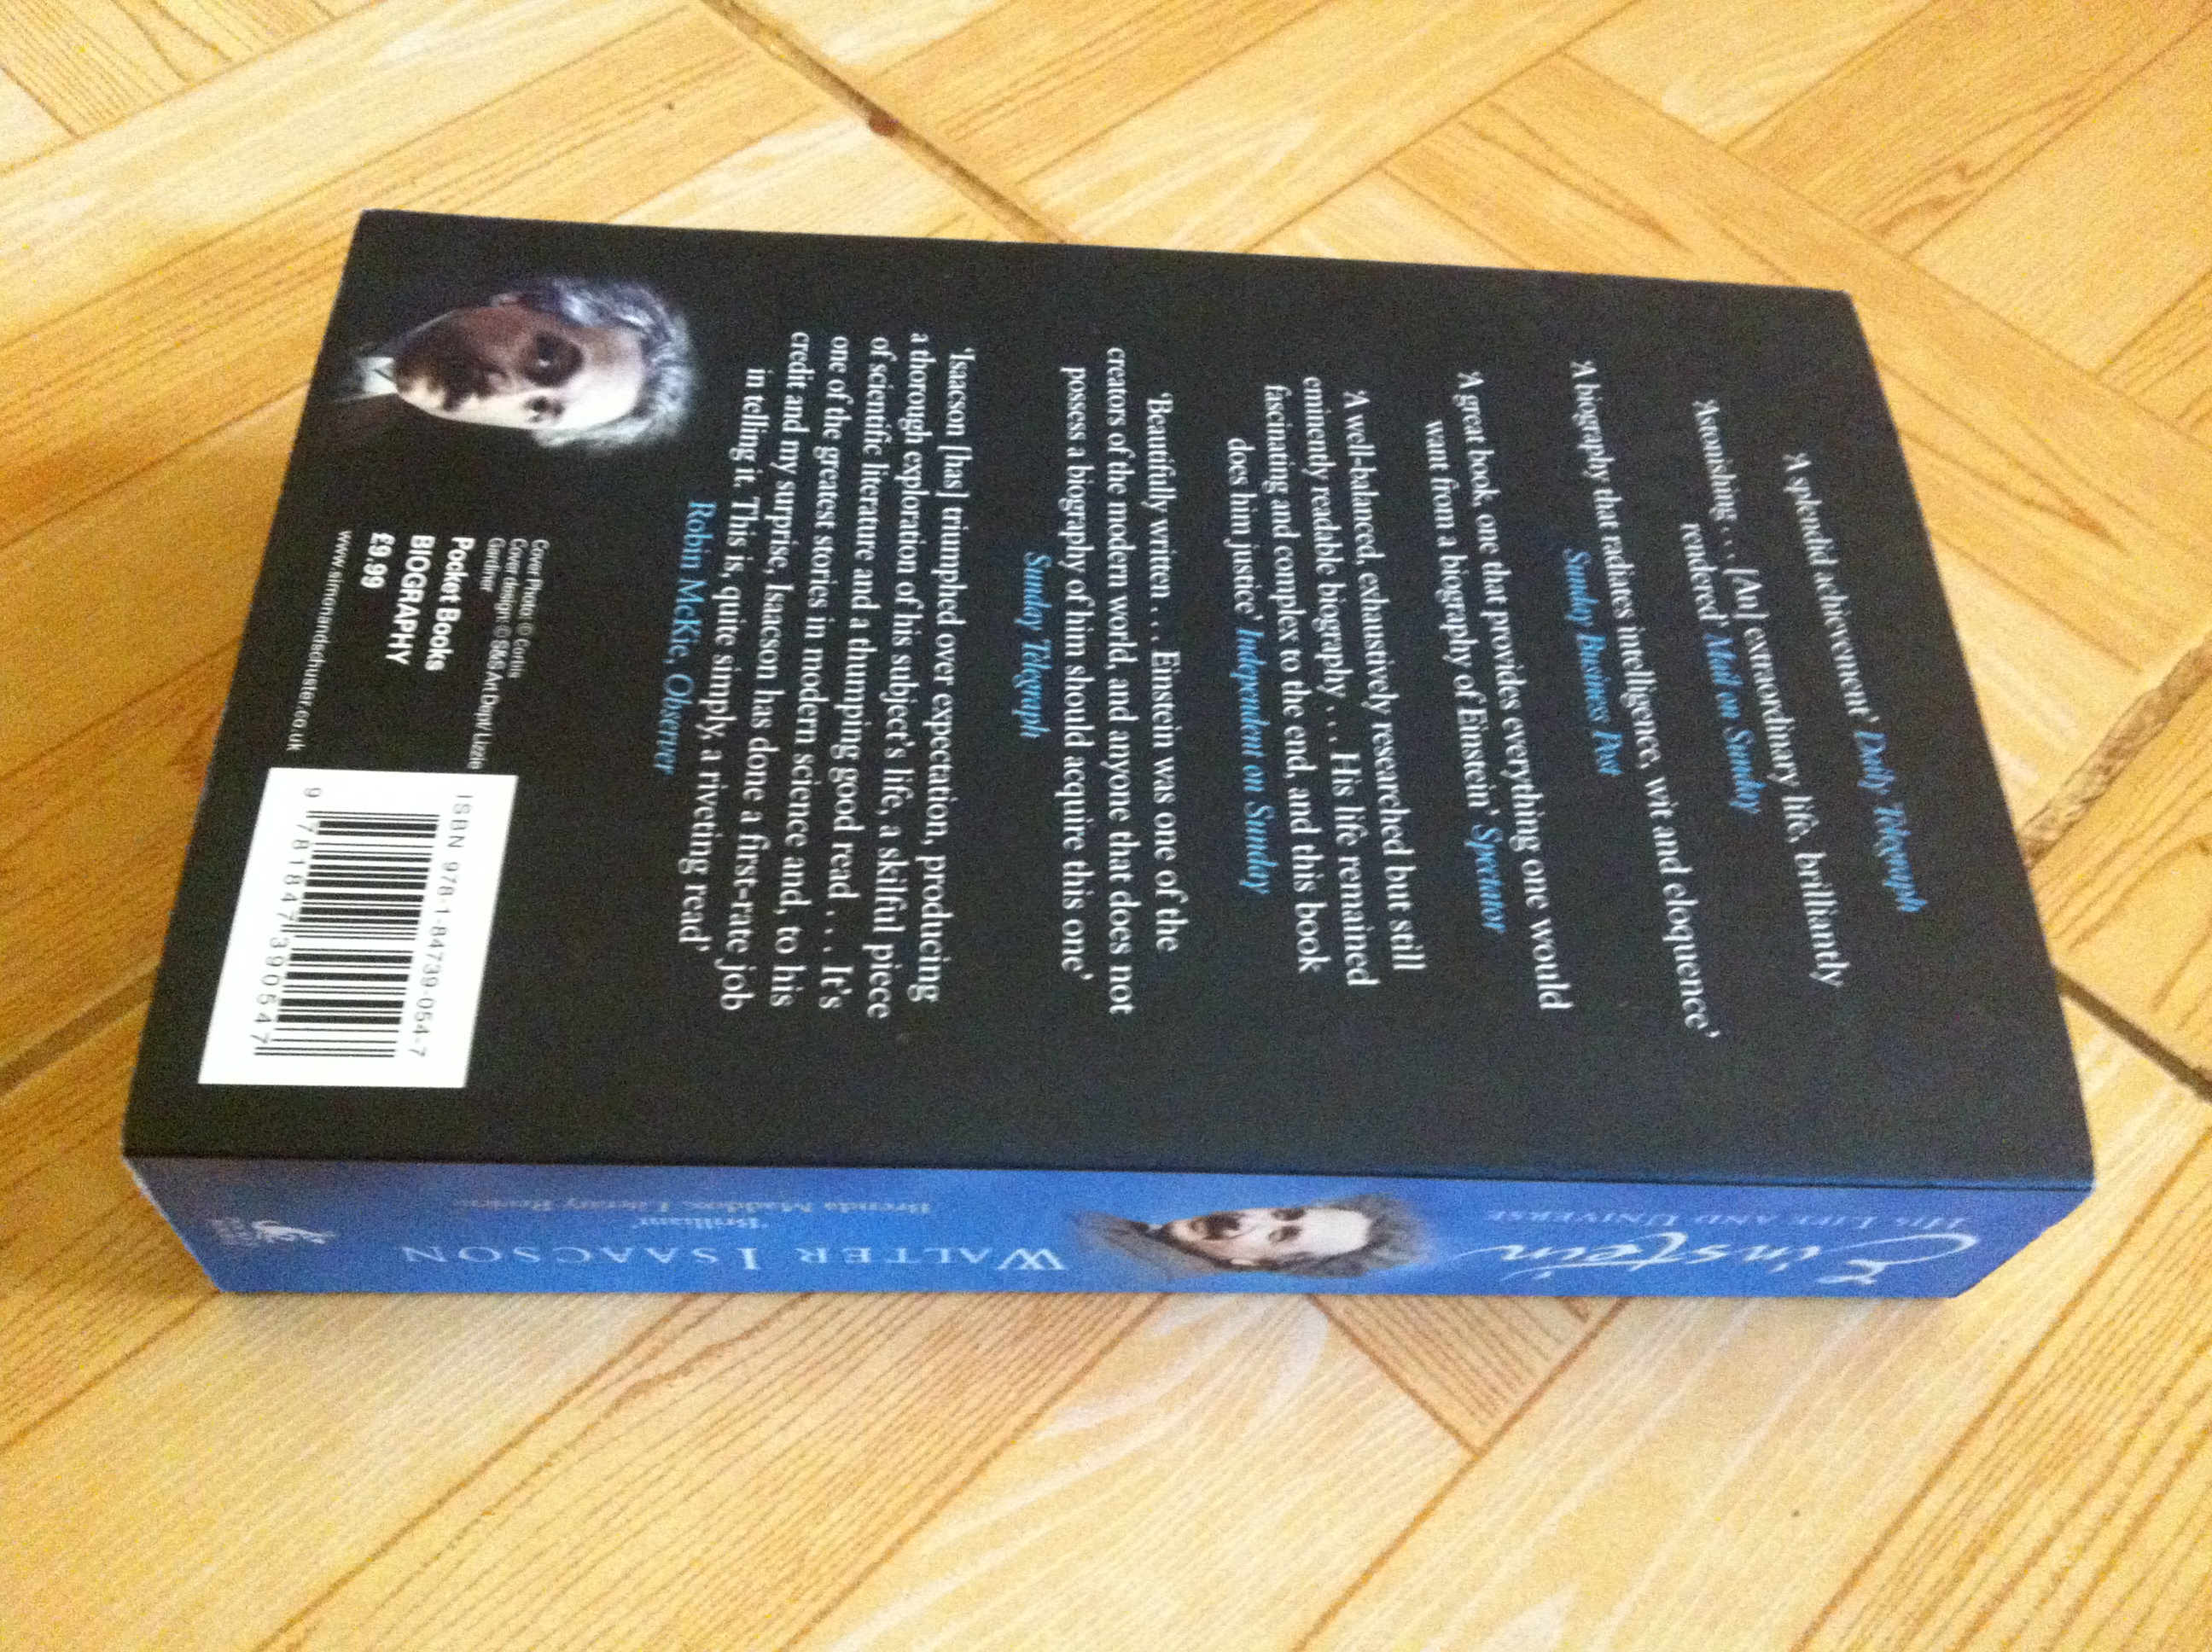 The back cover of Einstein: His Life and Universe by Isaacson Walter